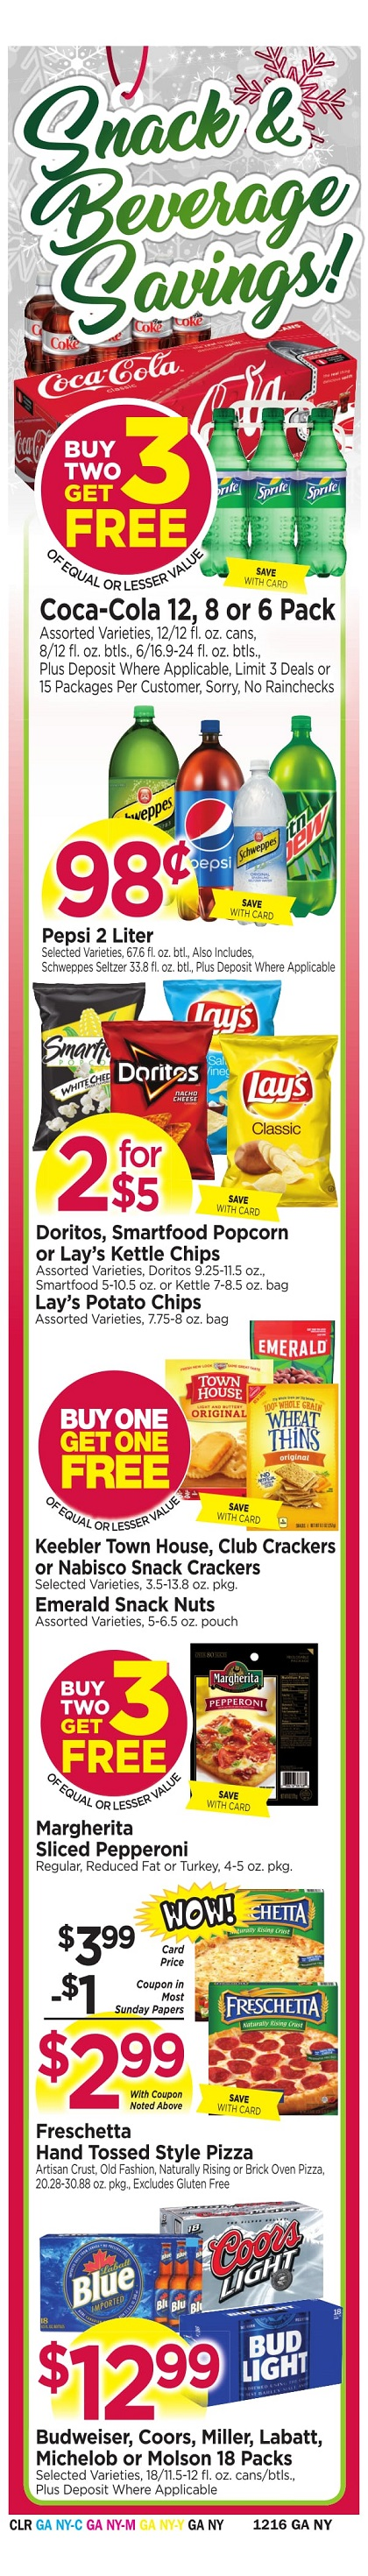 Tops Markets Ad Preview Week 12 10 Wrap